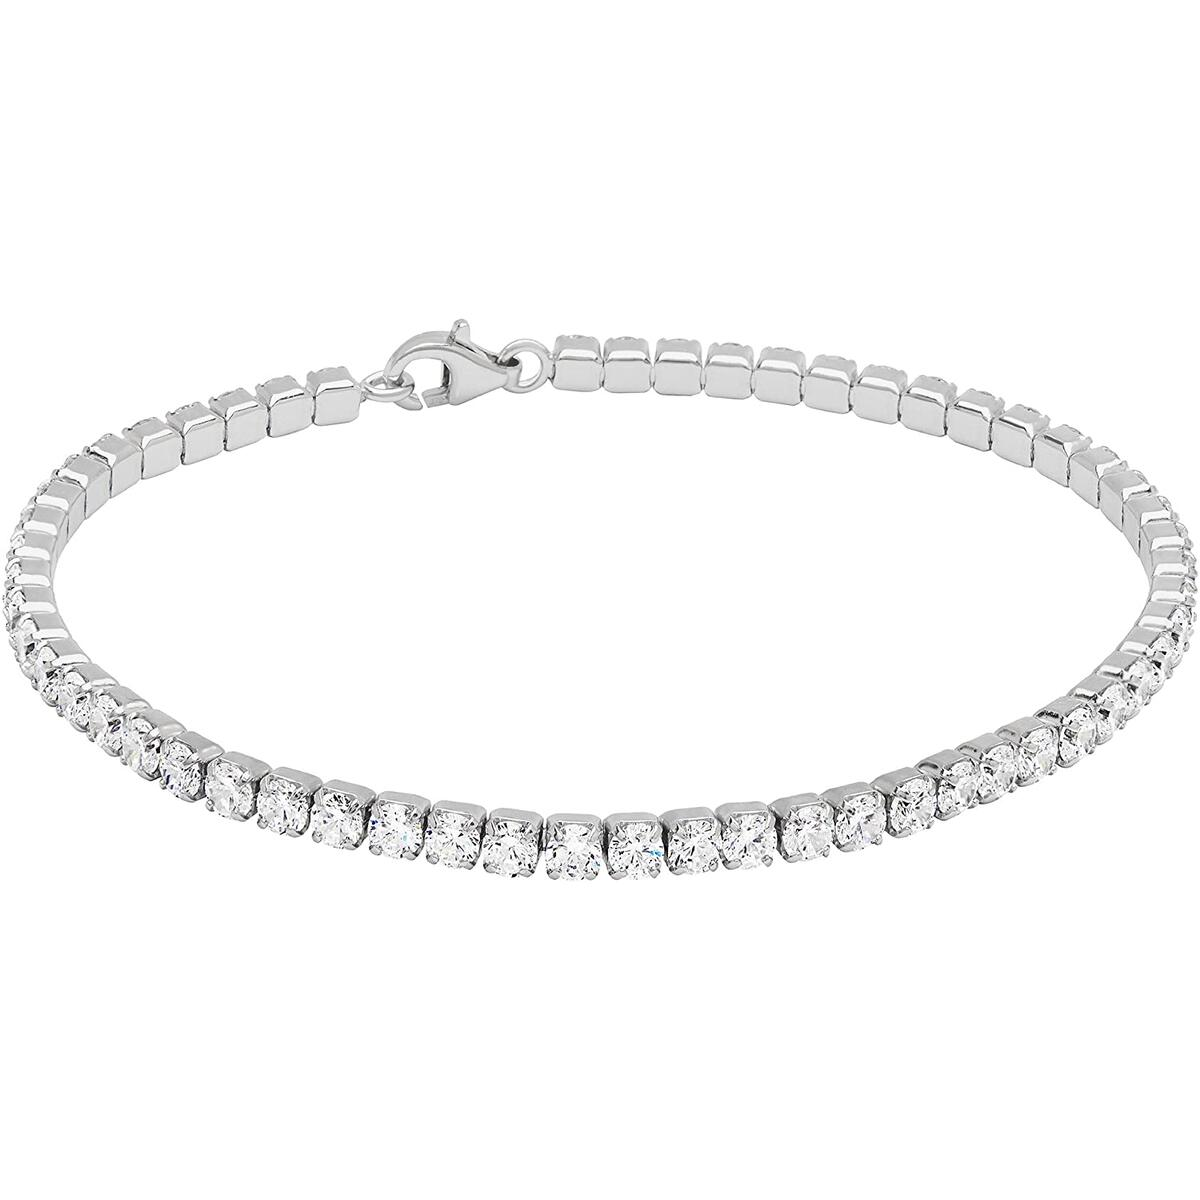 Sterling Silver Classic Tennis Bracelet 7 inches